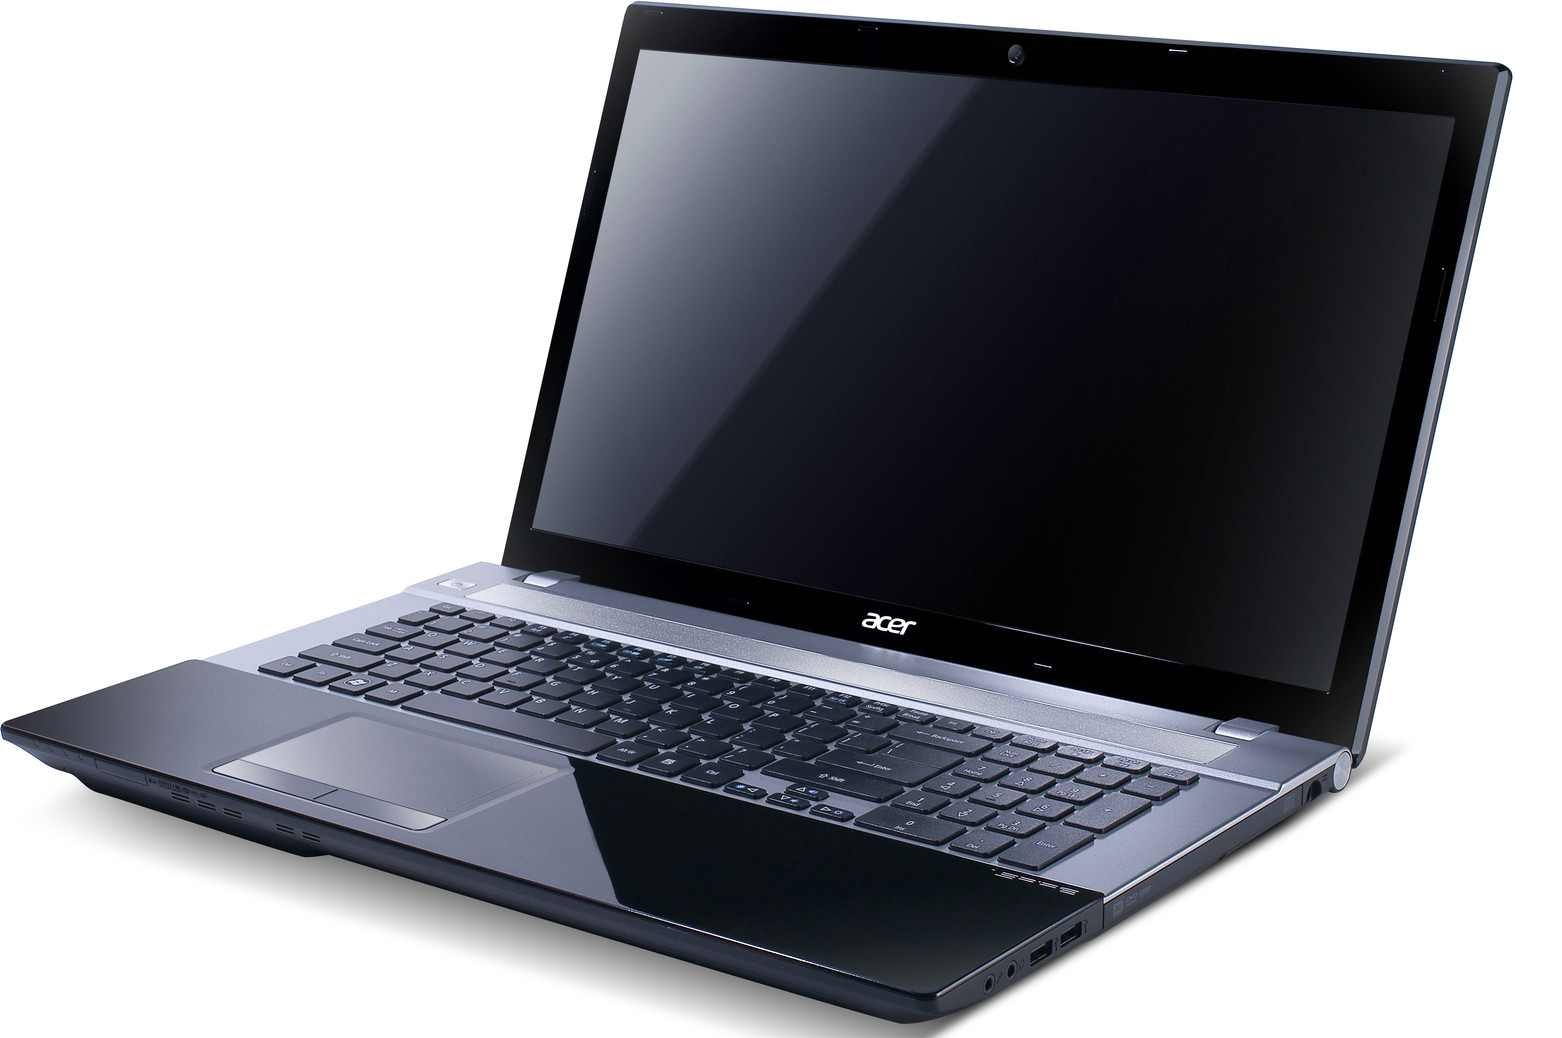 acer aspire 7315 notebooklaptop pc series driver update and drivers installation dvd disk afpouto. Black Bedroom Furniture Sets. Home Design Ideas